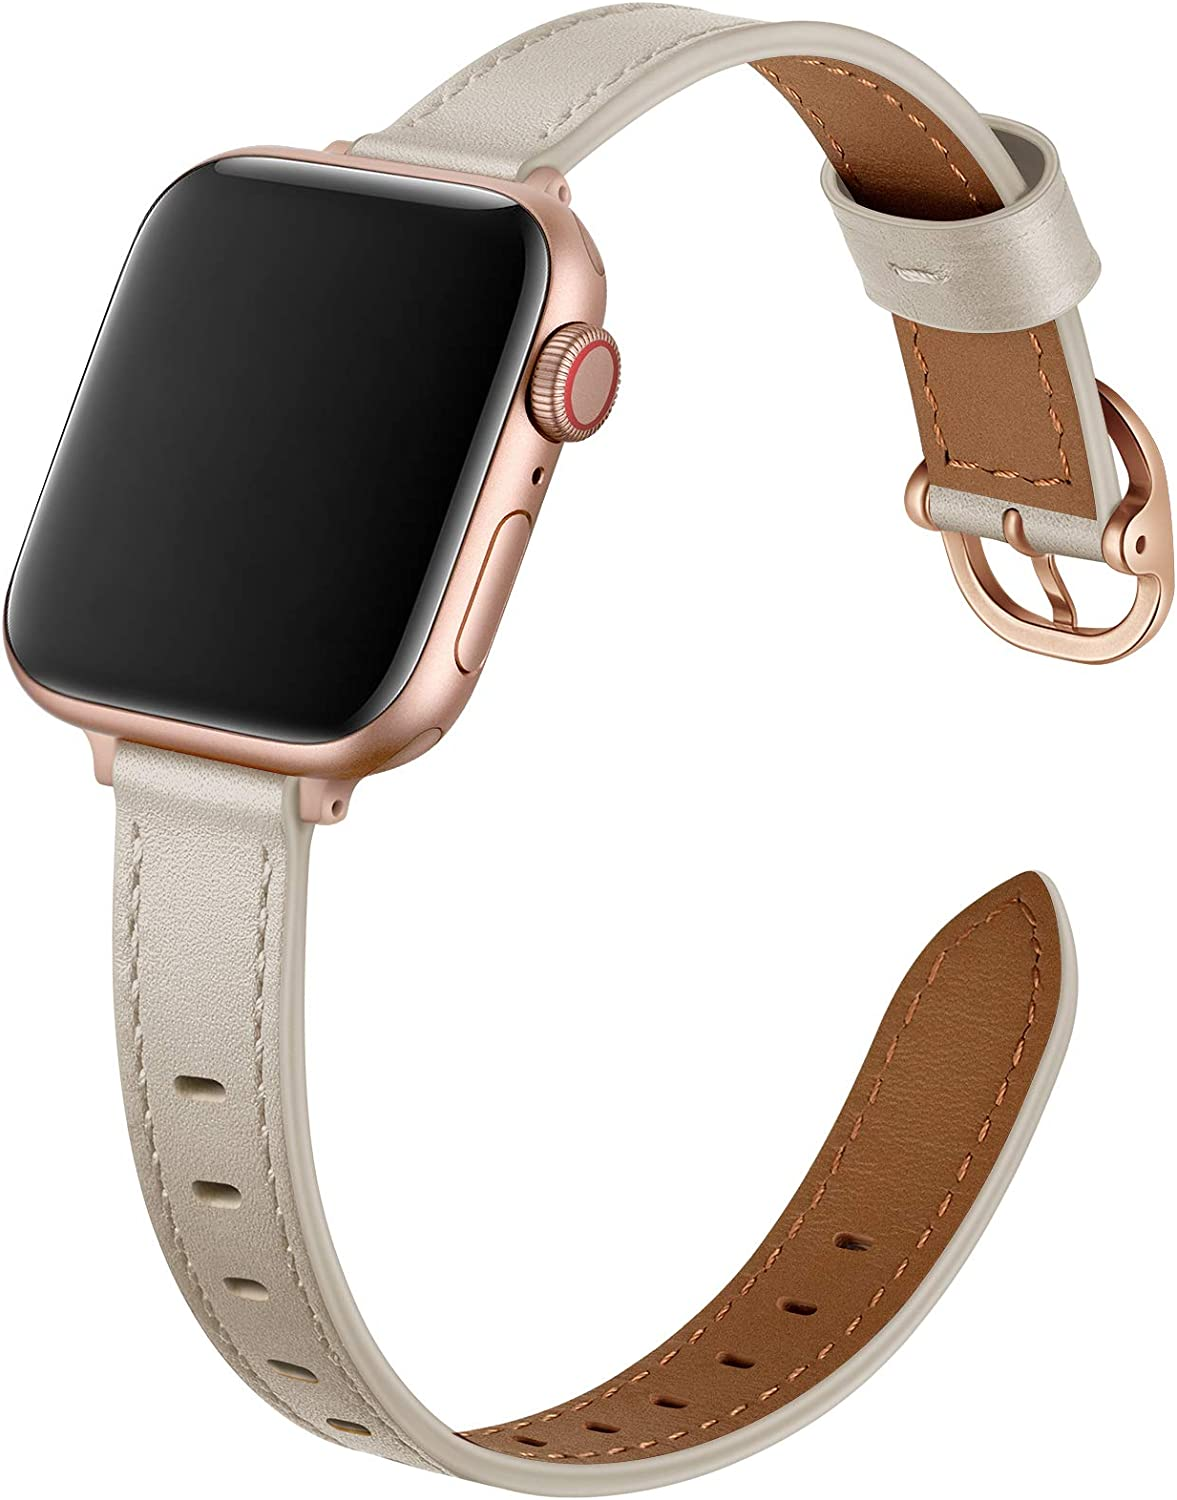 OUHENG Slim Bands Compatible with Apple Watch Band 40mm 38mm 44mm 42mm, Women Genuine Leather Thin Band Replacement Strap for iWatch SE Series 6 5 4 3 2 1 (Ivory White/Rose Gold, 40mm 38mm)